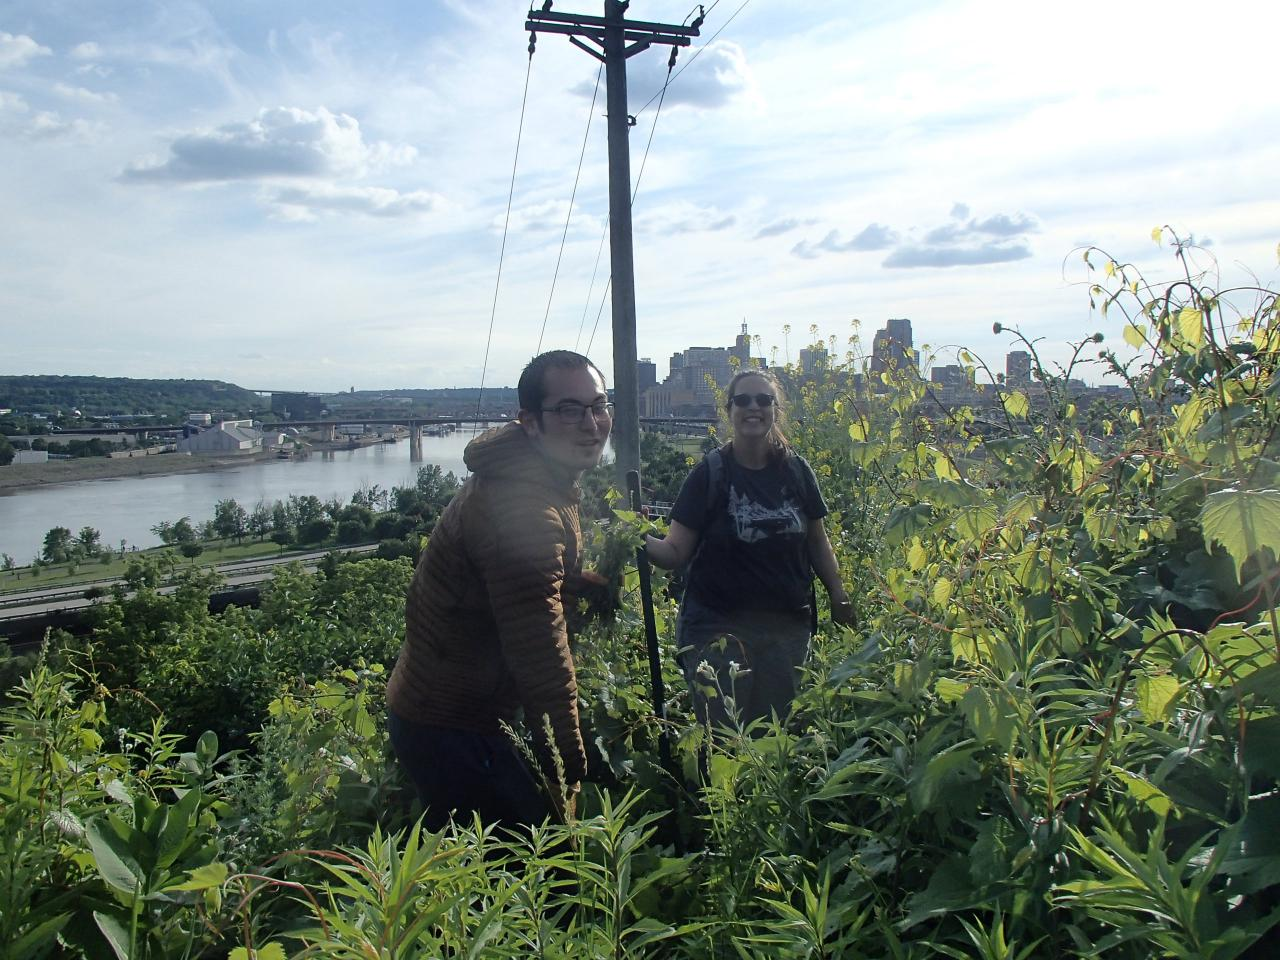 A volunteer and FMR staff member pull invasive plants on the Mounds Park bluff, with the river and St. Paul skyline in the background